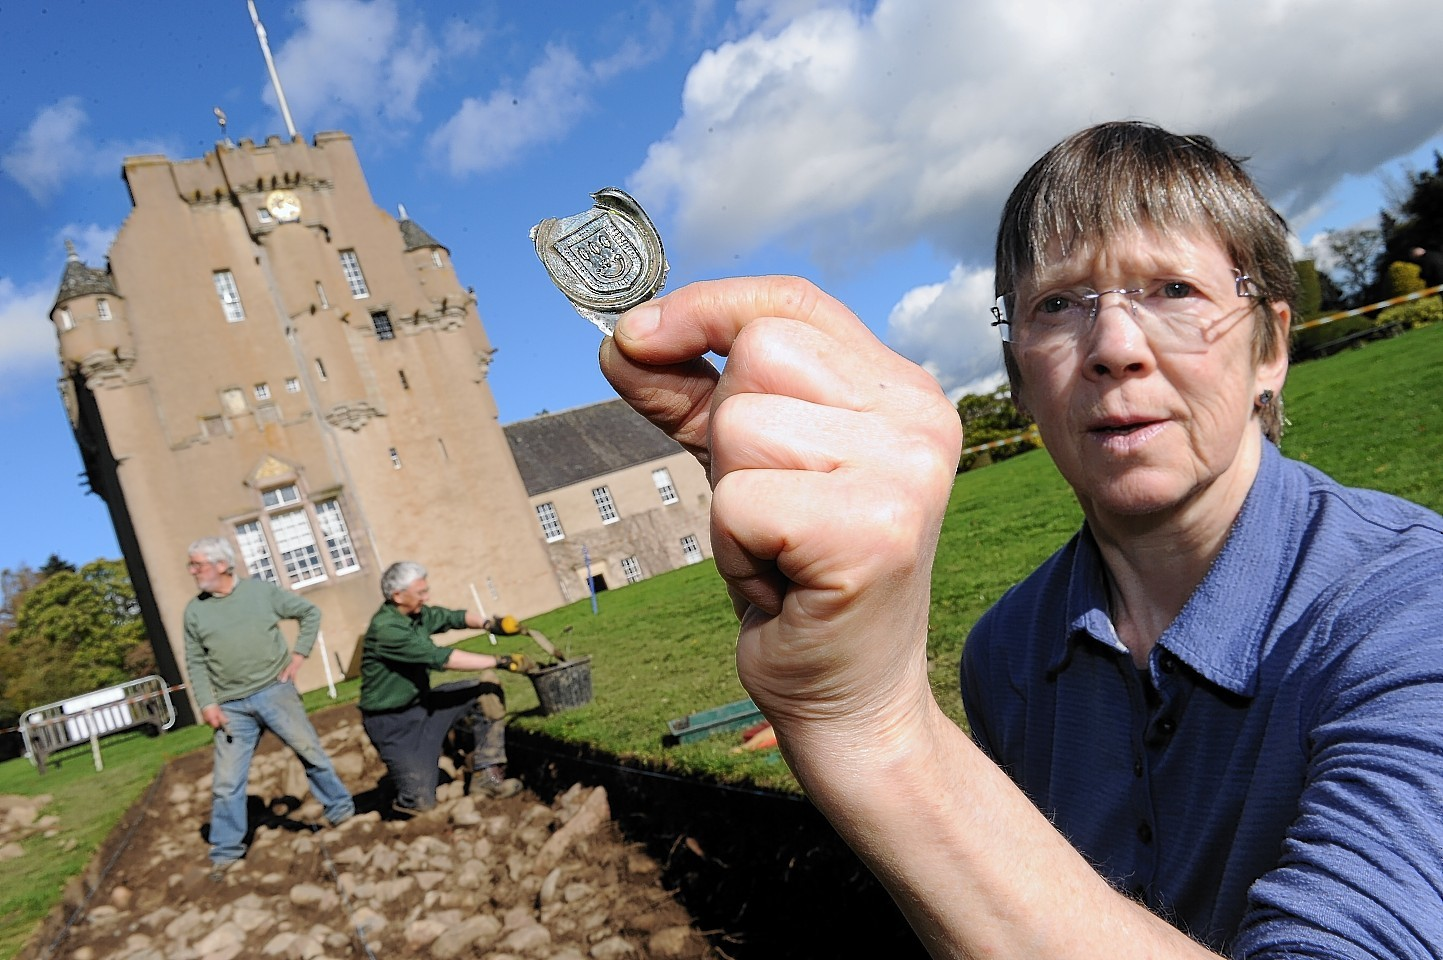 Volunteer Veronica Ross with a bottle seal showing the Burnett Coat Of Arms found at an archaeological dig at Crathes Castle.